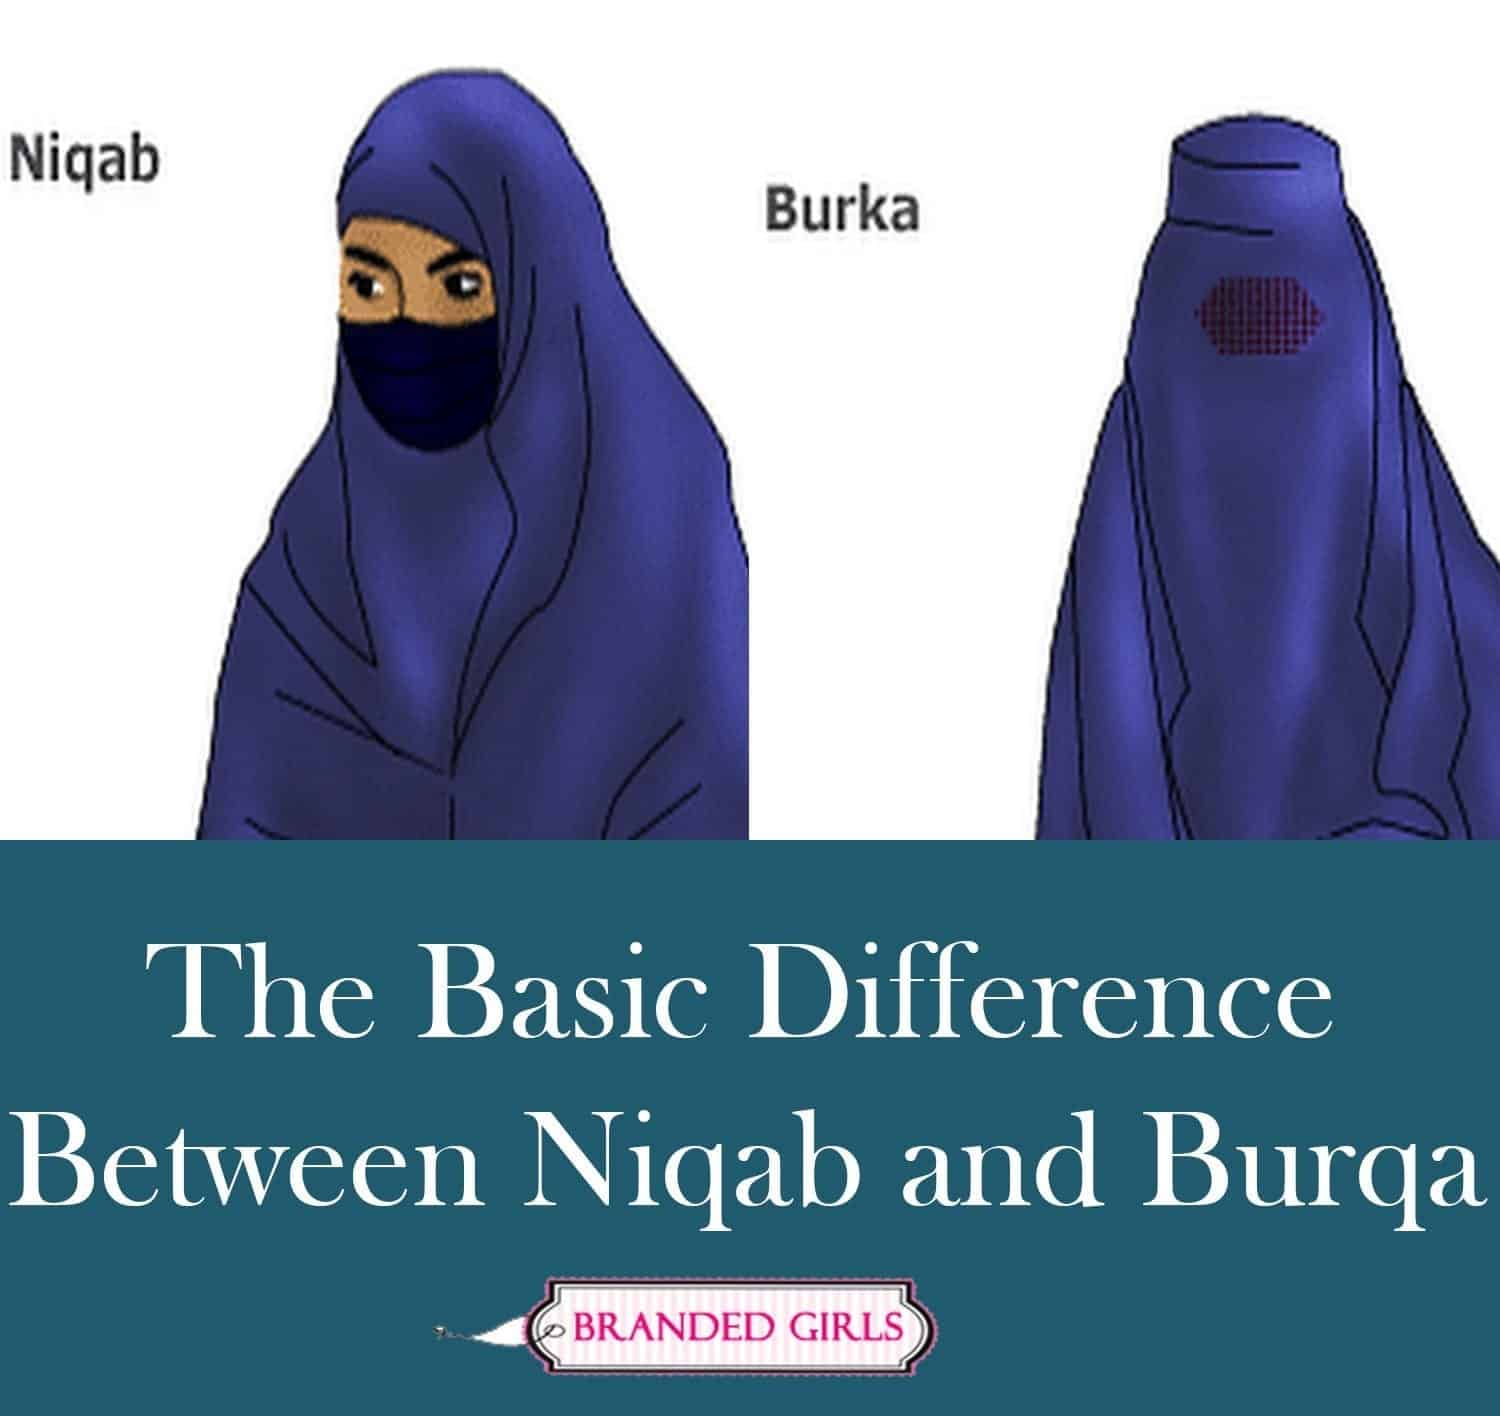 the-basic-difference-between-niqab-and-burqa Burka vs Niqab- The Basic Difference Between Niqab and Burka